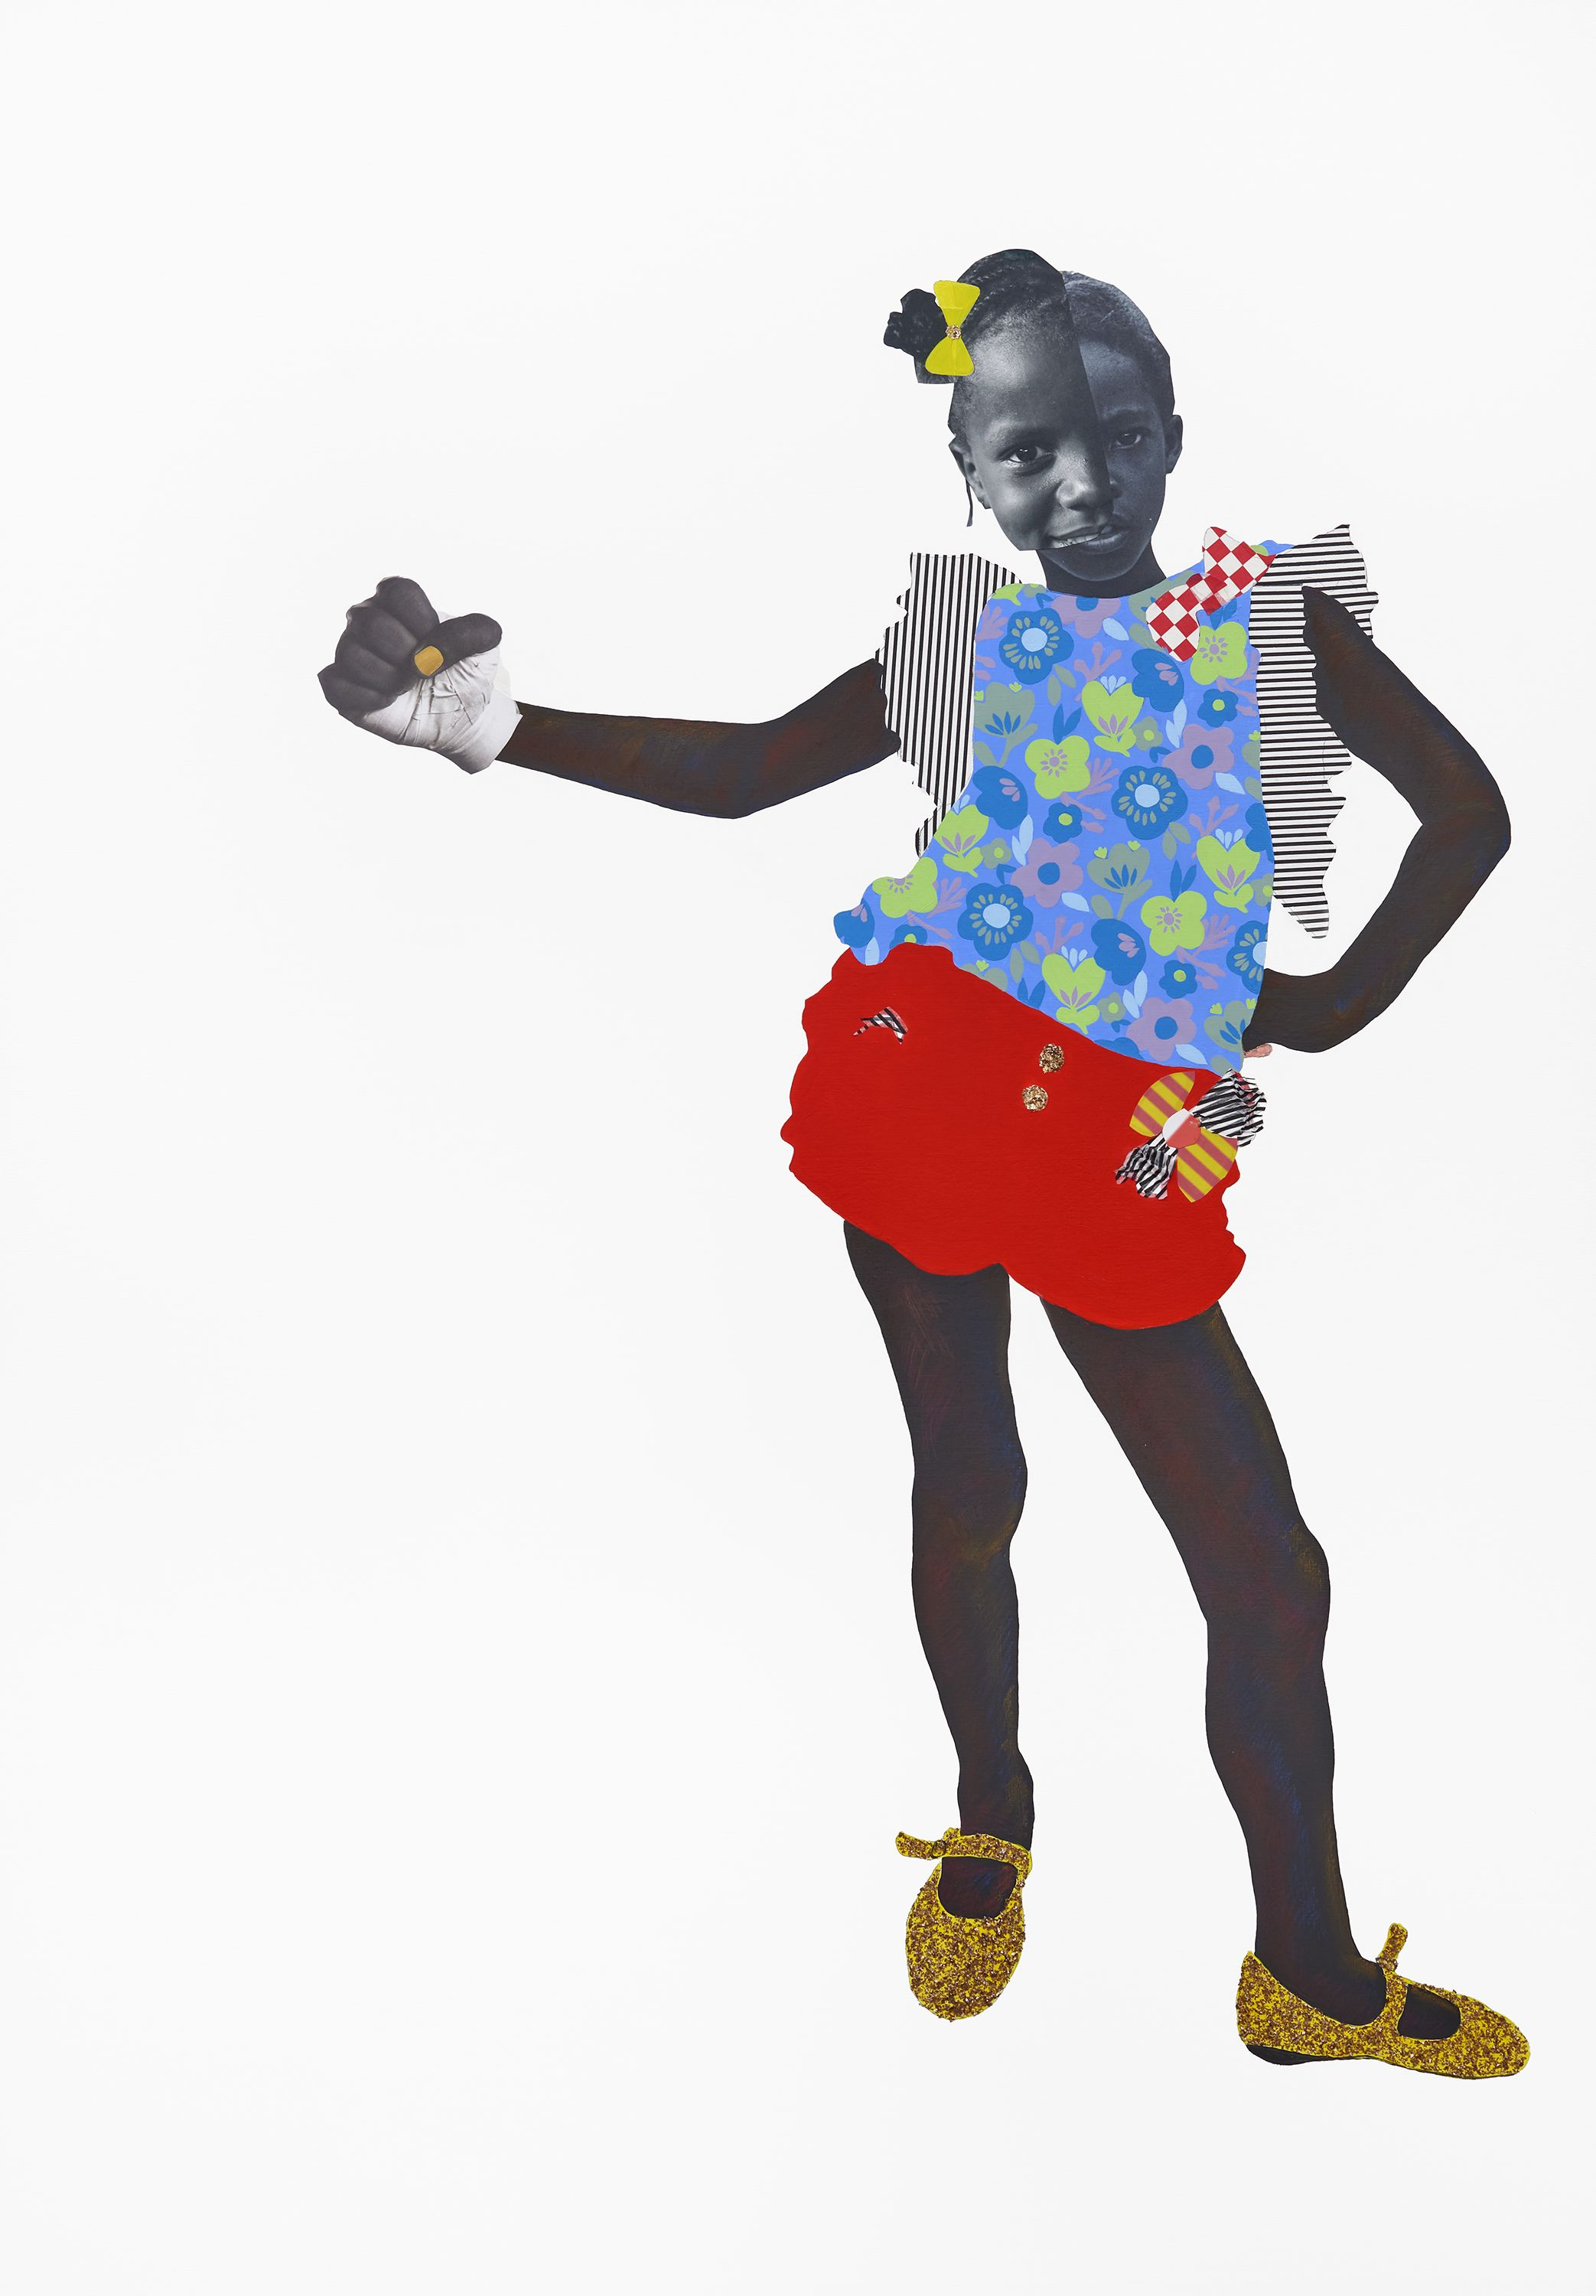 "Deborah Roberts first solo in Europe - BY Katy Cowan CREATIVE BOOM May 16 2019""Entitled 'If They Come', Roberts uses Baldwin's words to highlight the cross-generational struggle against racism and the socio-political parallels between 1970 and 2019. Continuing this call for solidarity, Roberts' use of collage speaks to the challenges encountered by young black children as they strive to build their identity, particularly as they respond to preconceived social constructs perpetuated by the black community, the white gaze and visual culture at large.""[Image caption] ""Hip bone"" 2019 (Mixed media collage on canvas, 65 x 45 inches)"